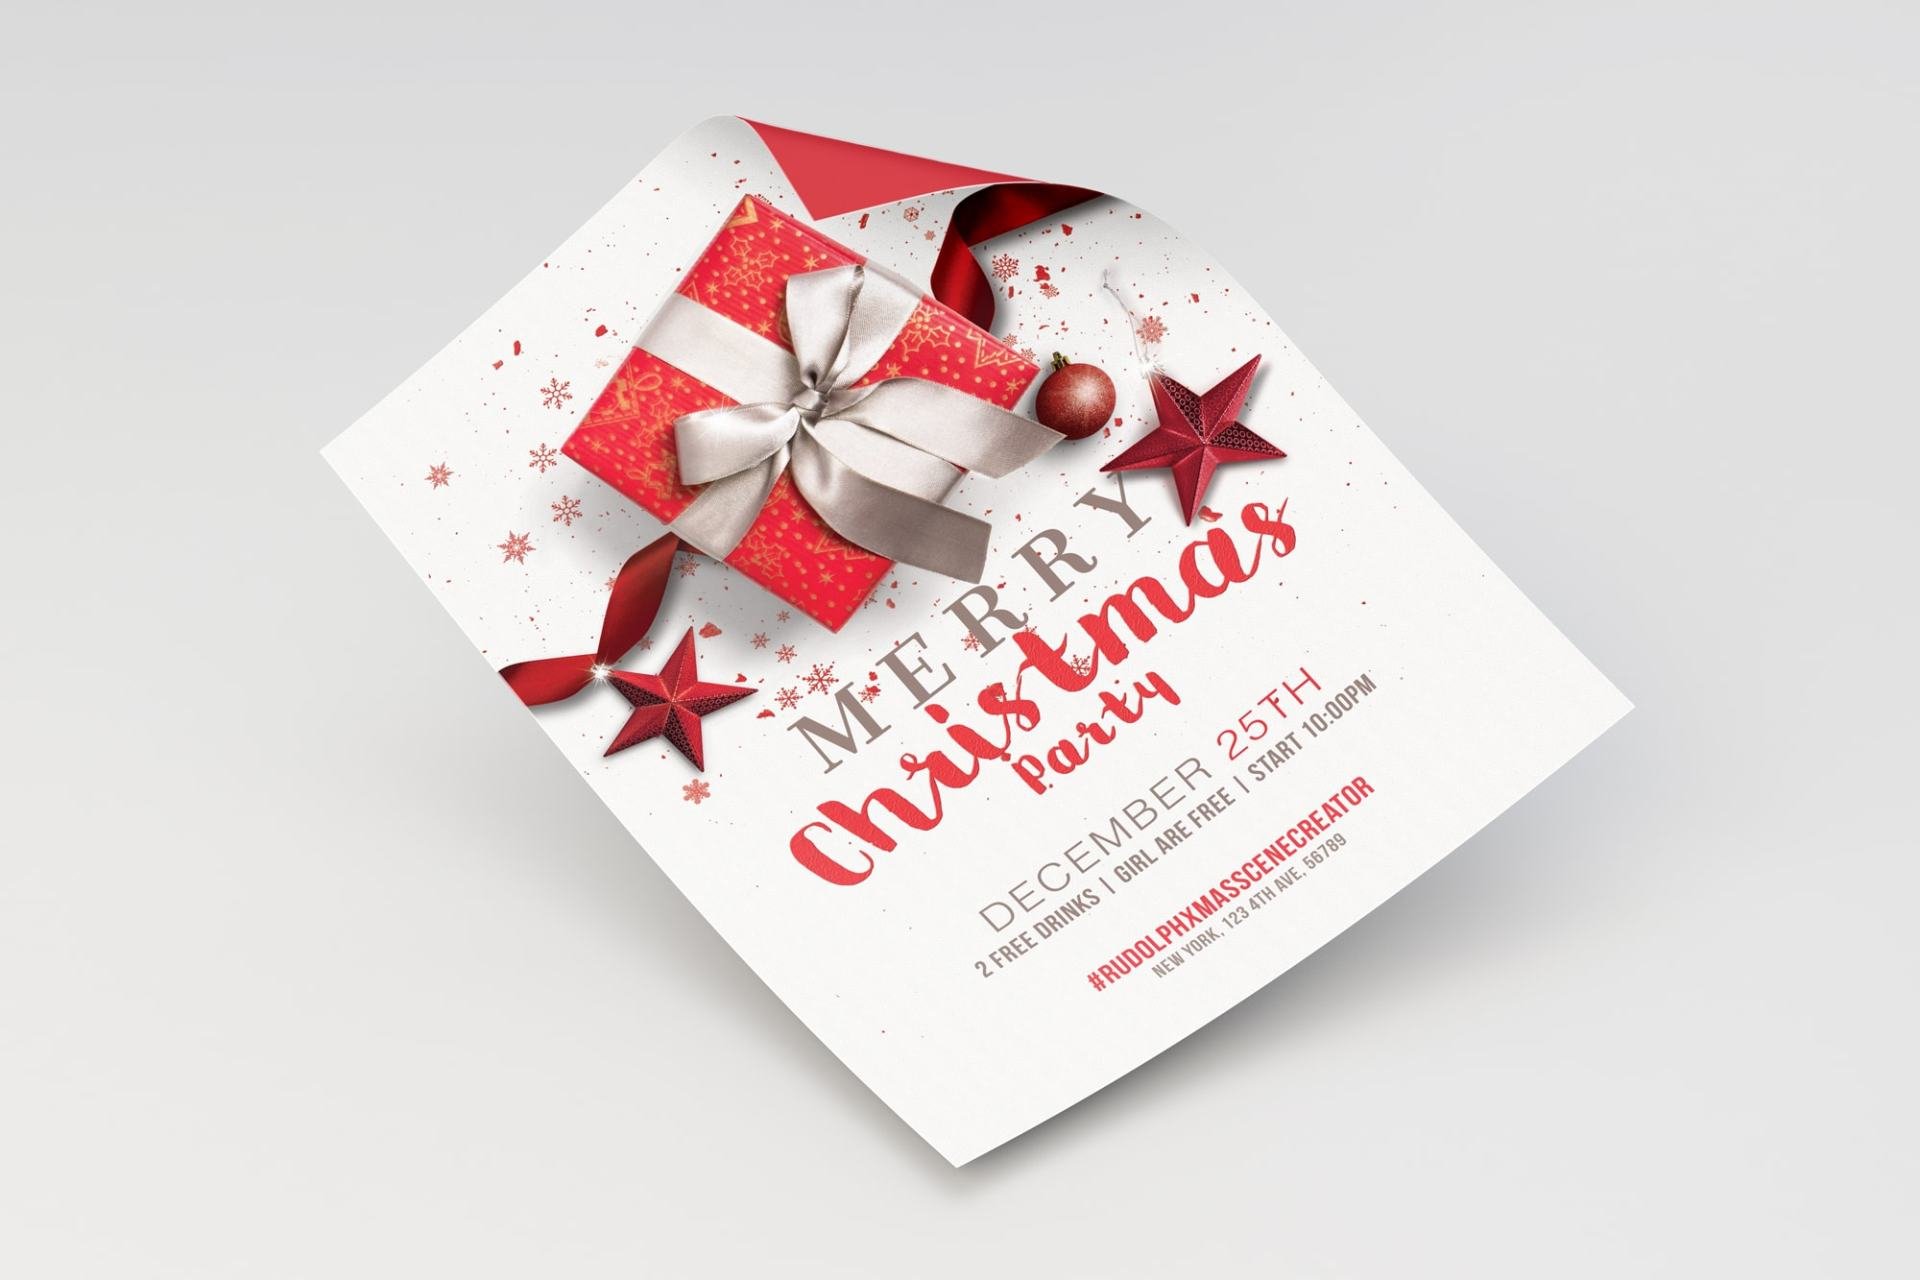 Merry Christmas Flyer - Poster Template 01